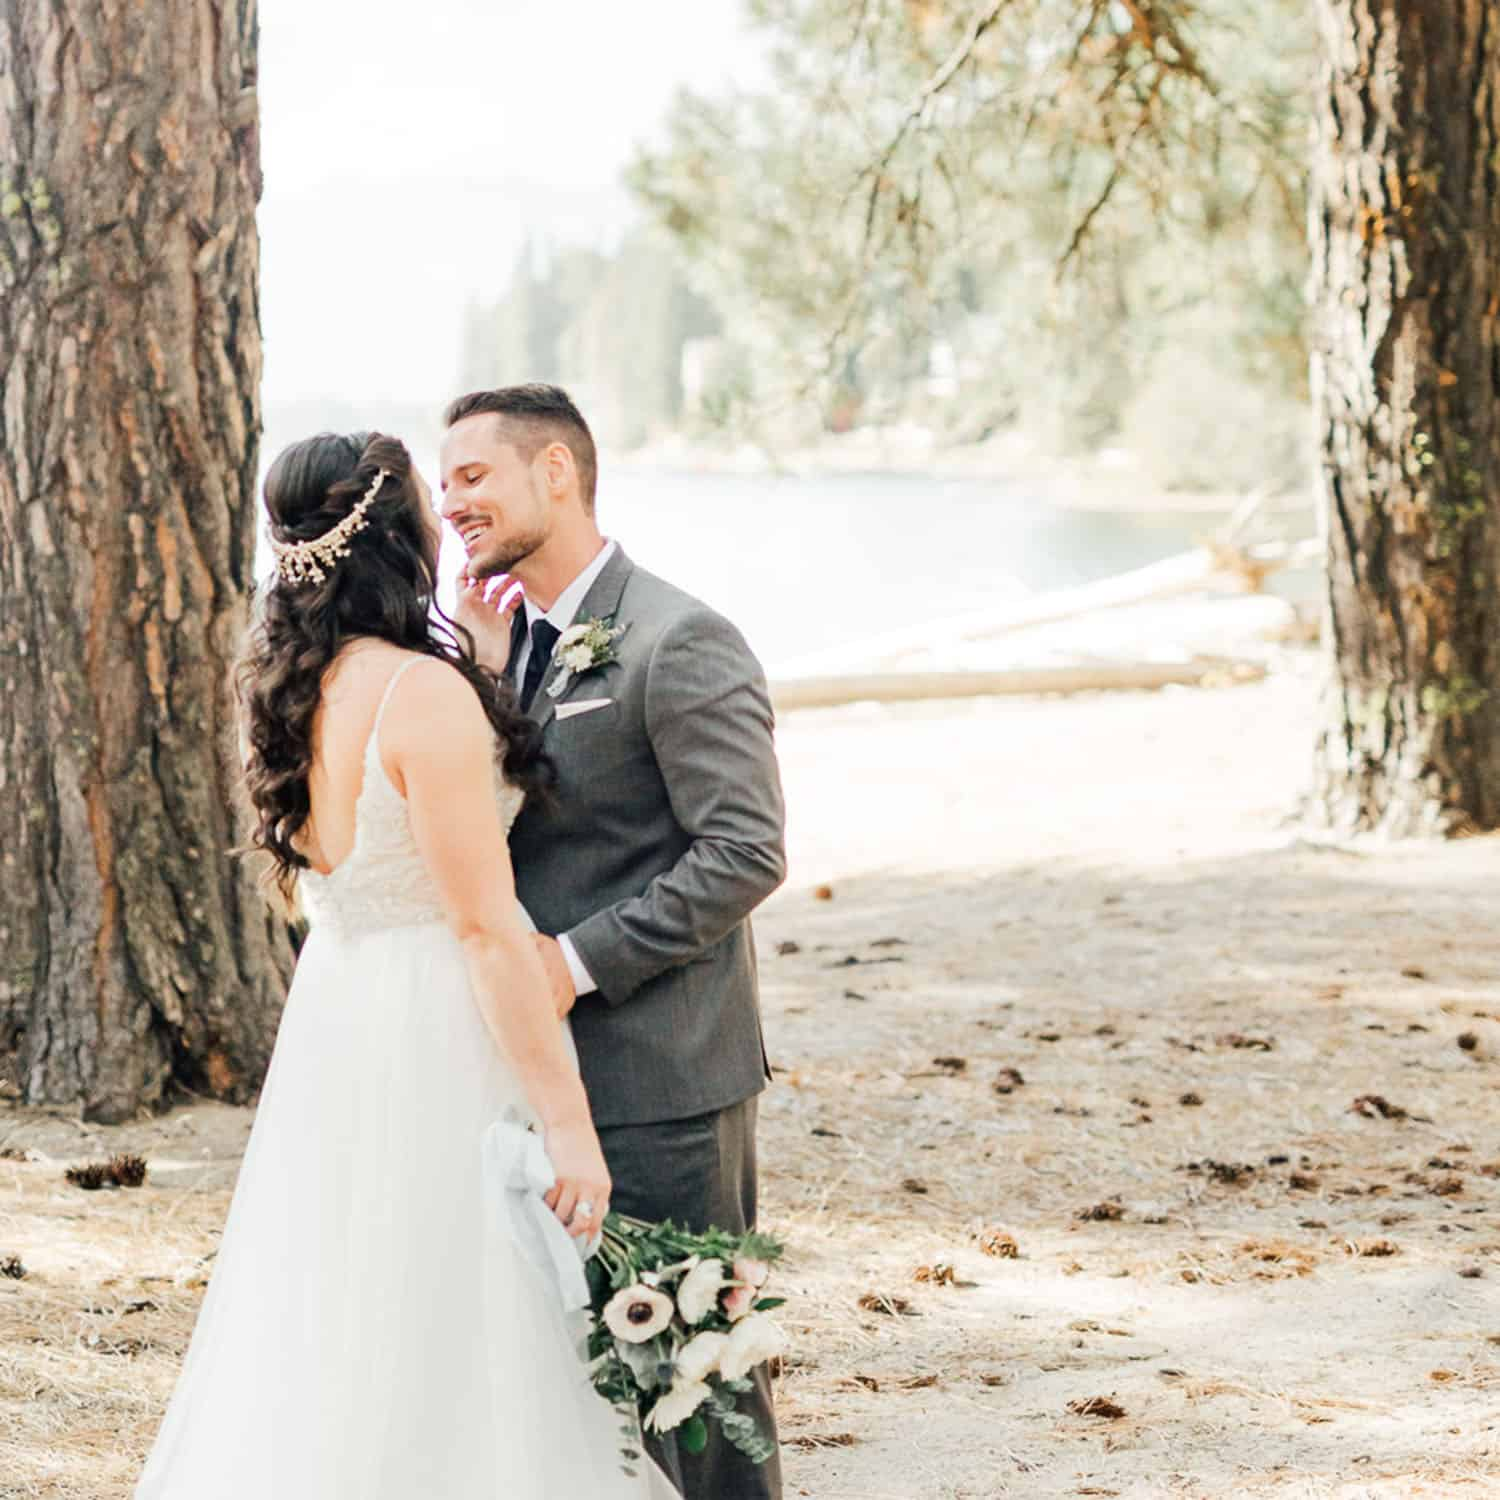 Shelby Schmidt's portrait of a bride and groom gazing into one another's eyes in a lakeside forest